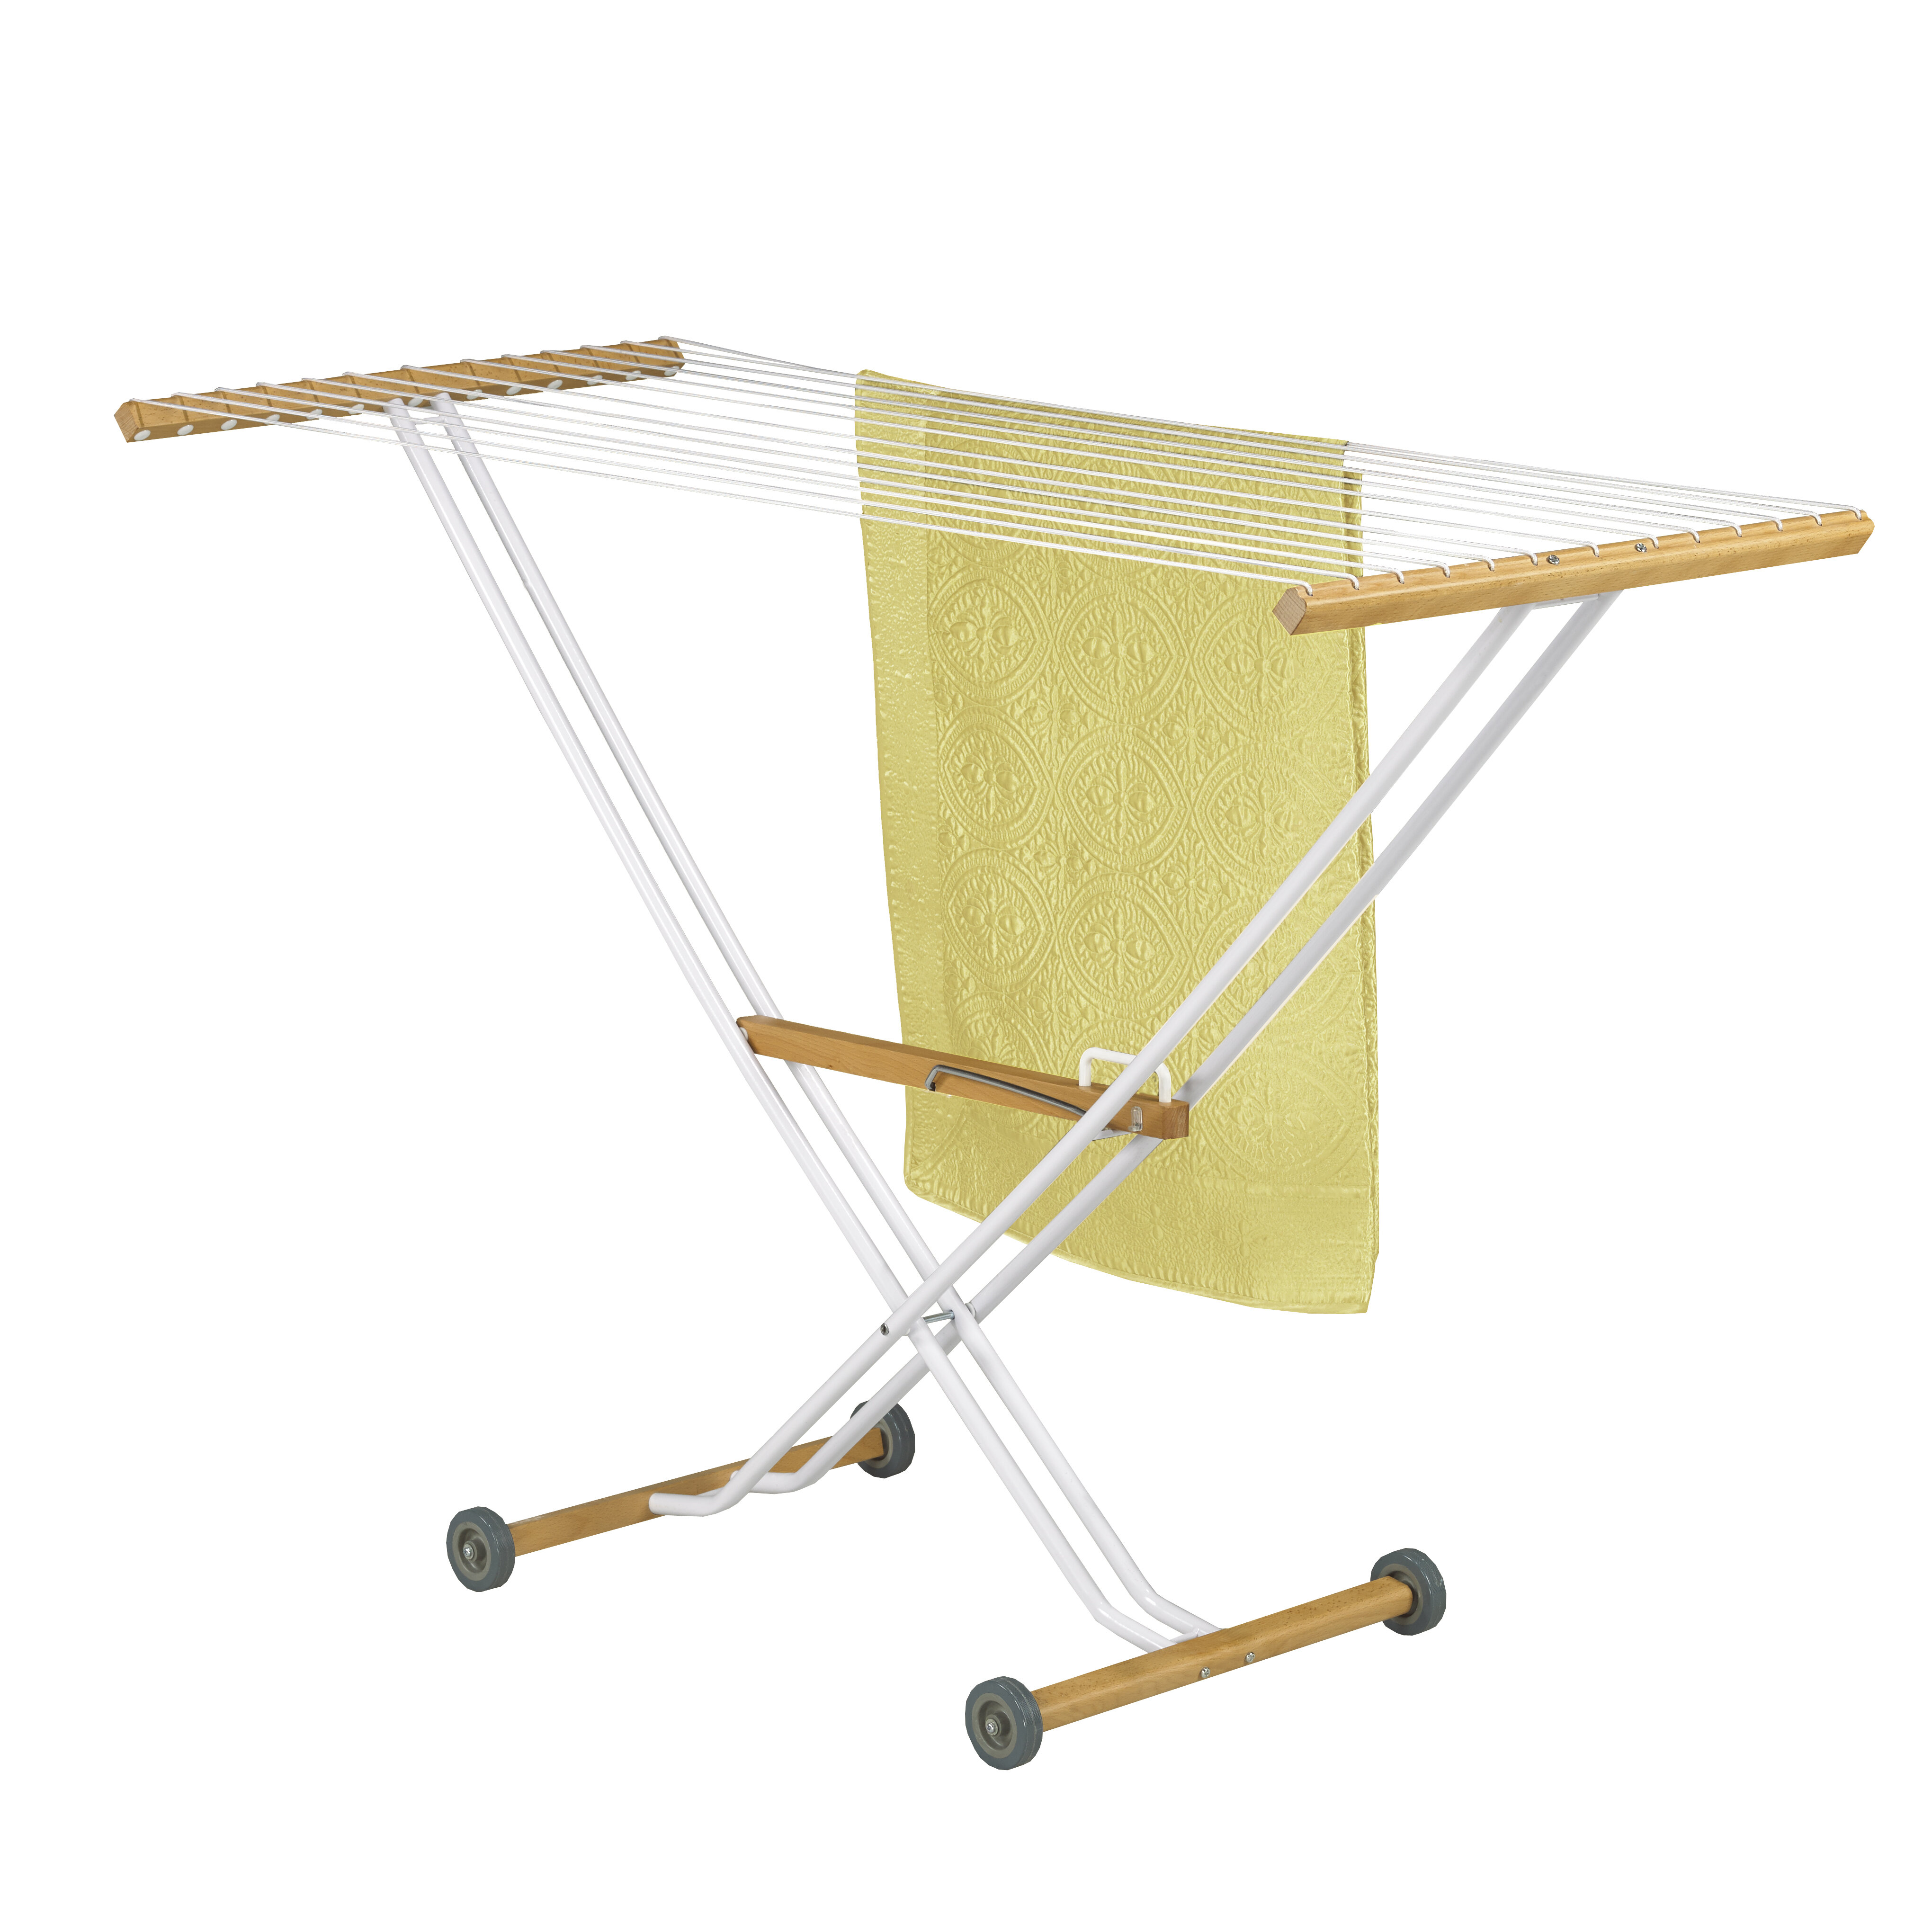 main rack airer drying laundry washing itm folding clothes fold cloths outdoor line indoor dryer